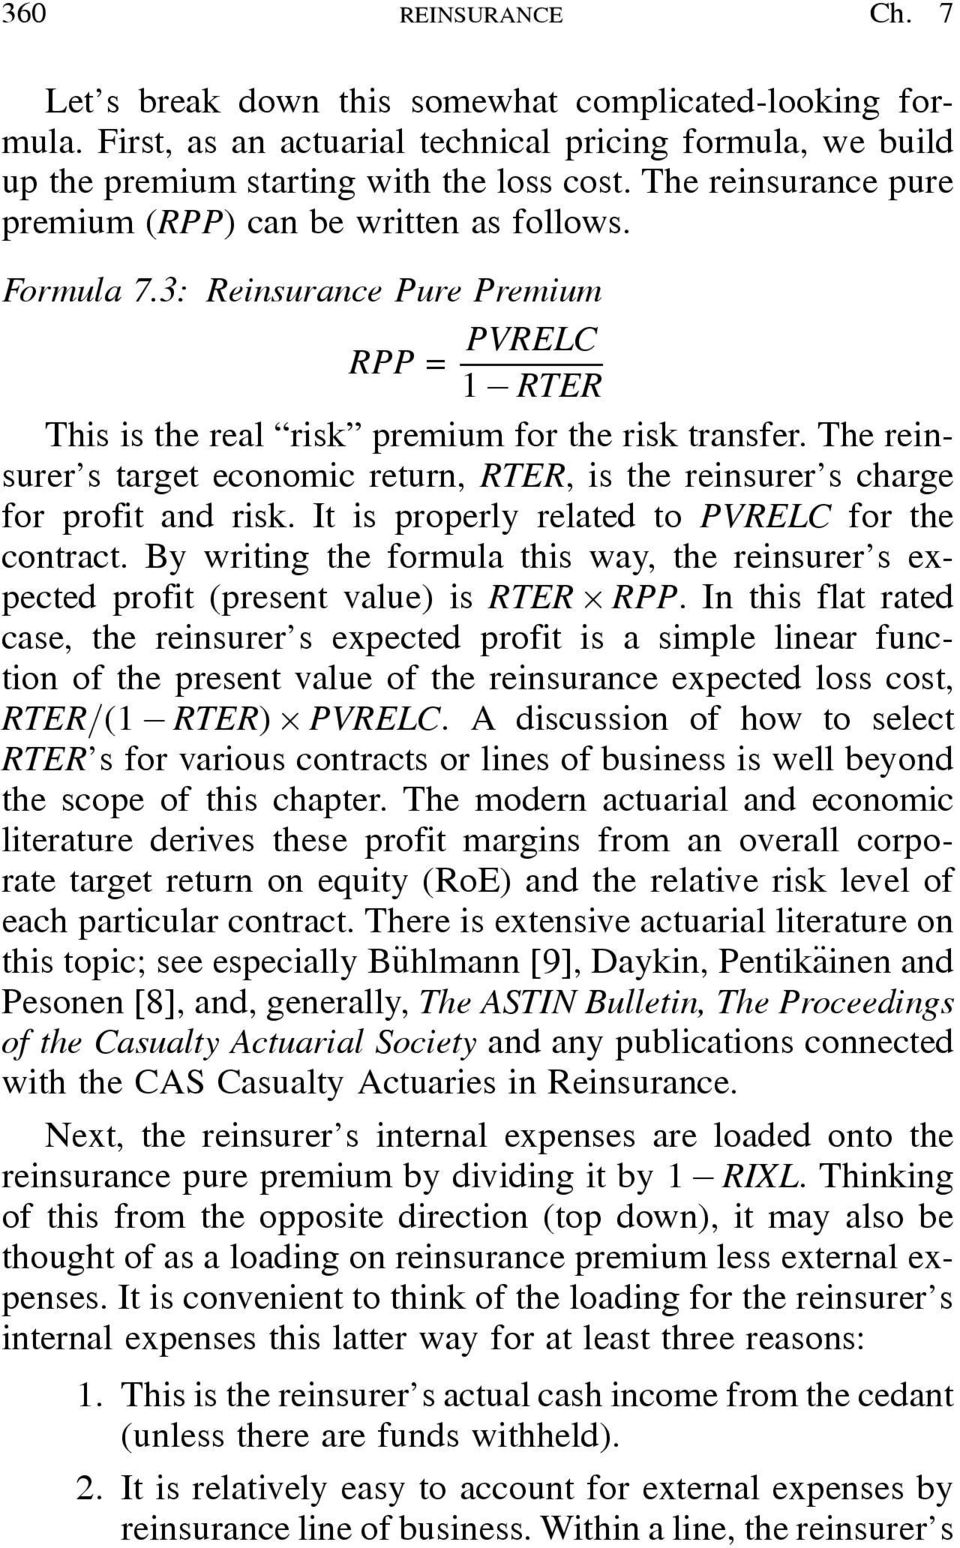 The reinsurer s target economic return, RTER, is the reinsurer s charge for profit and risk. It is properly related to PVRELC for the contract.